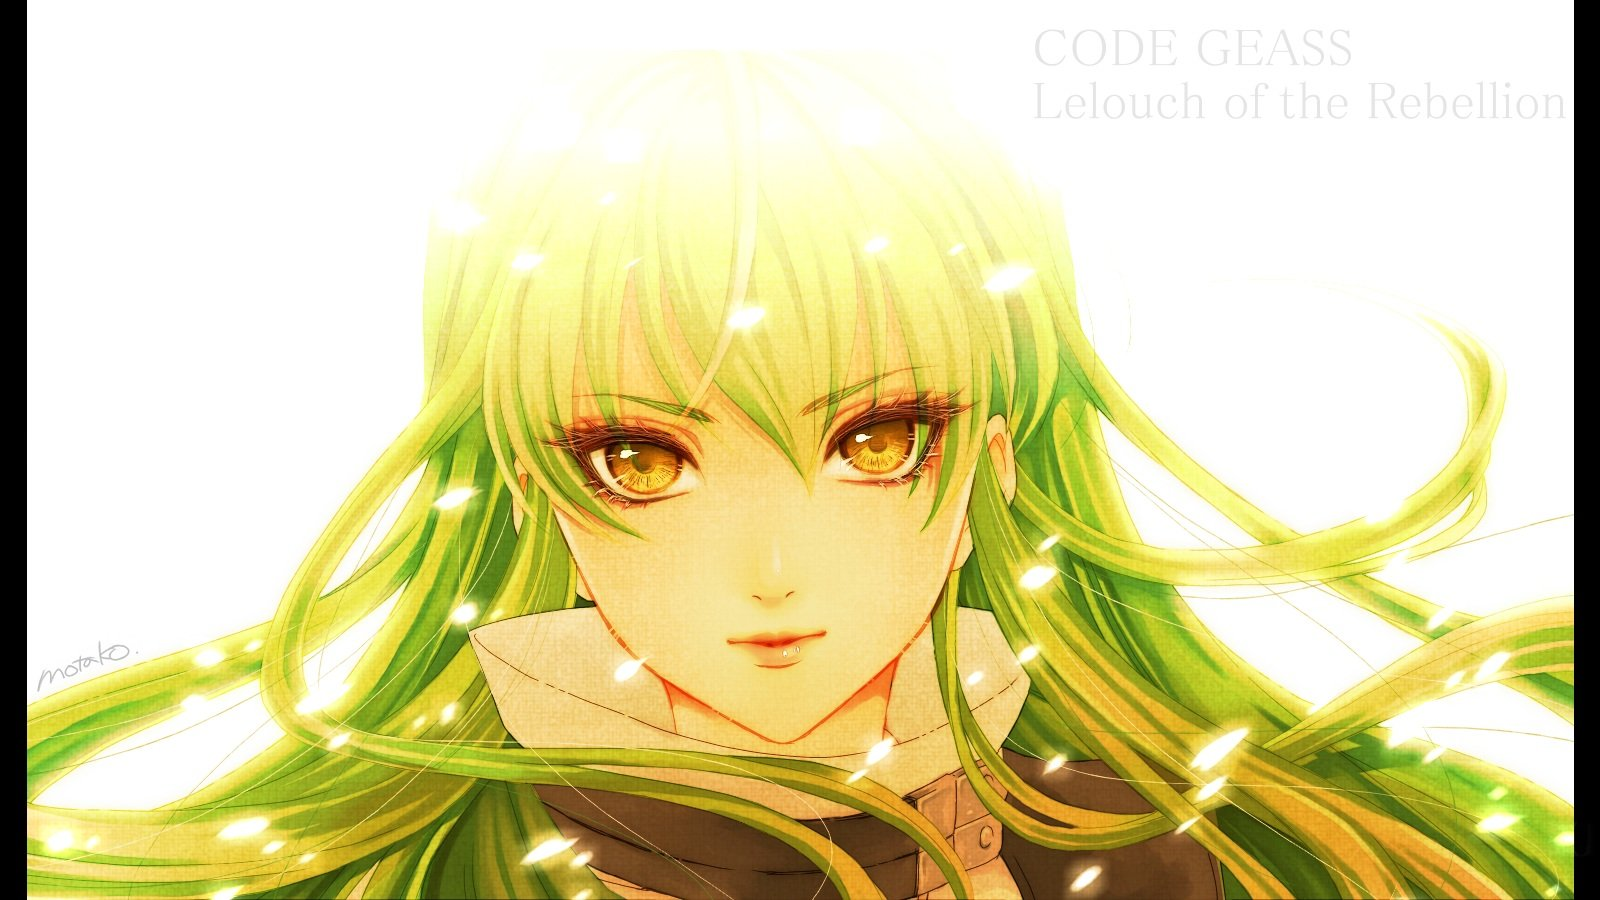 Download hd 1600x900 CC (Code Geass) desktop background ID:44767 for free